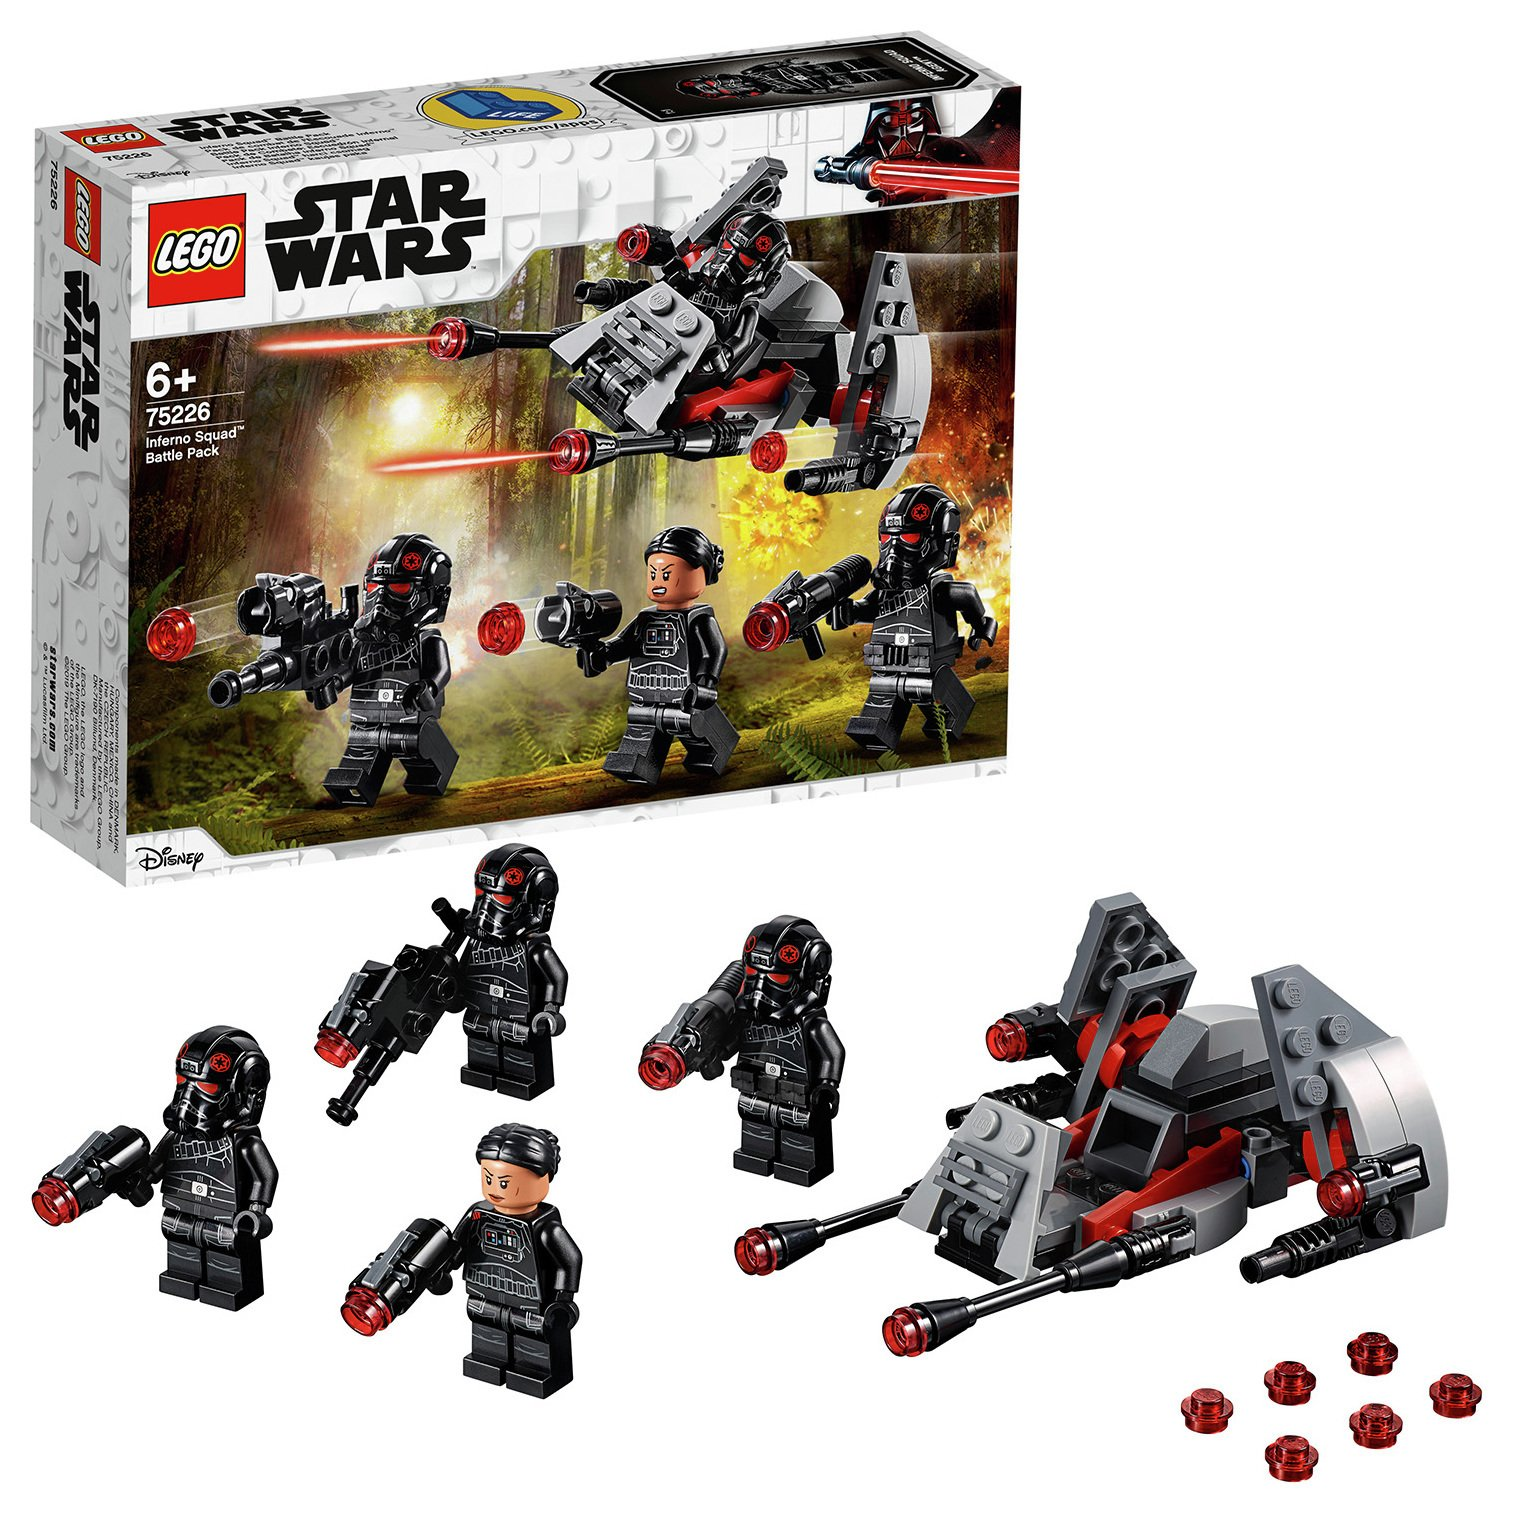 LEGO Star Wars Inferno Squad Battle Building Set - 75226